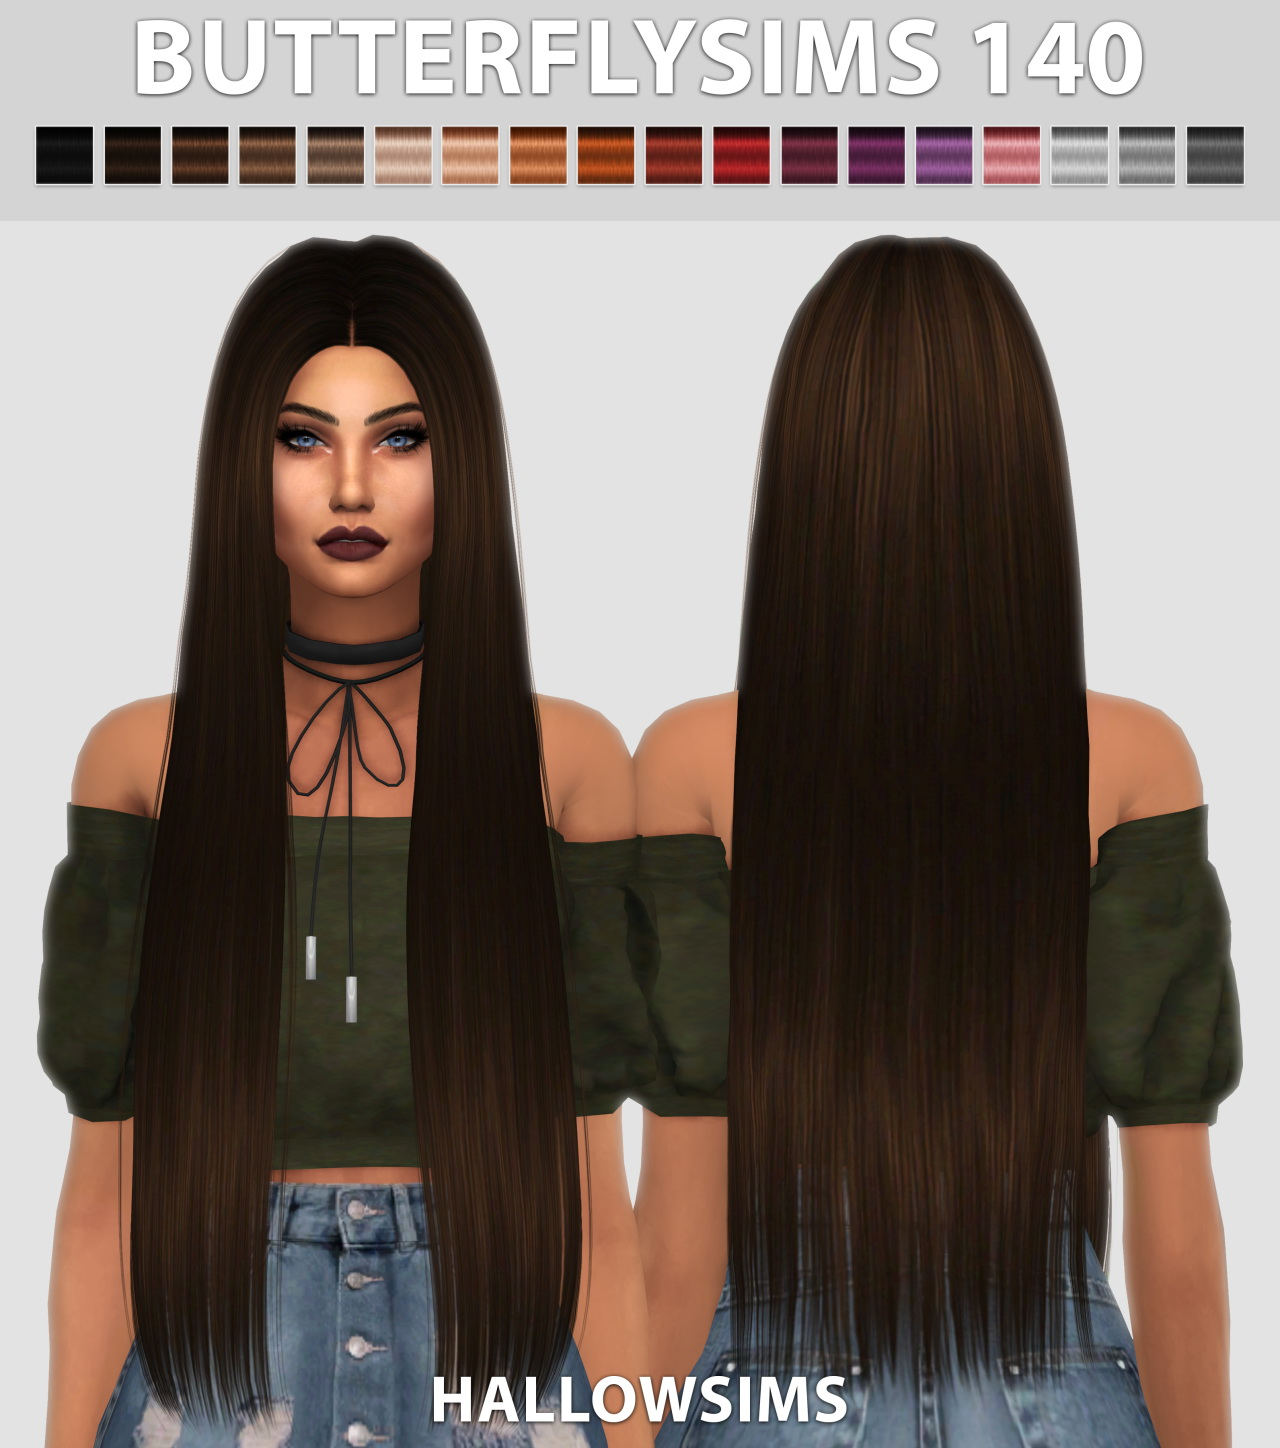 Sims 4 Hairstyles: Hallow Sims: Butterfly`s 140 Hair Retextured